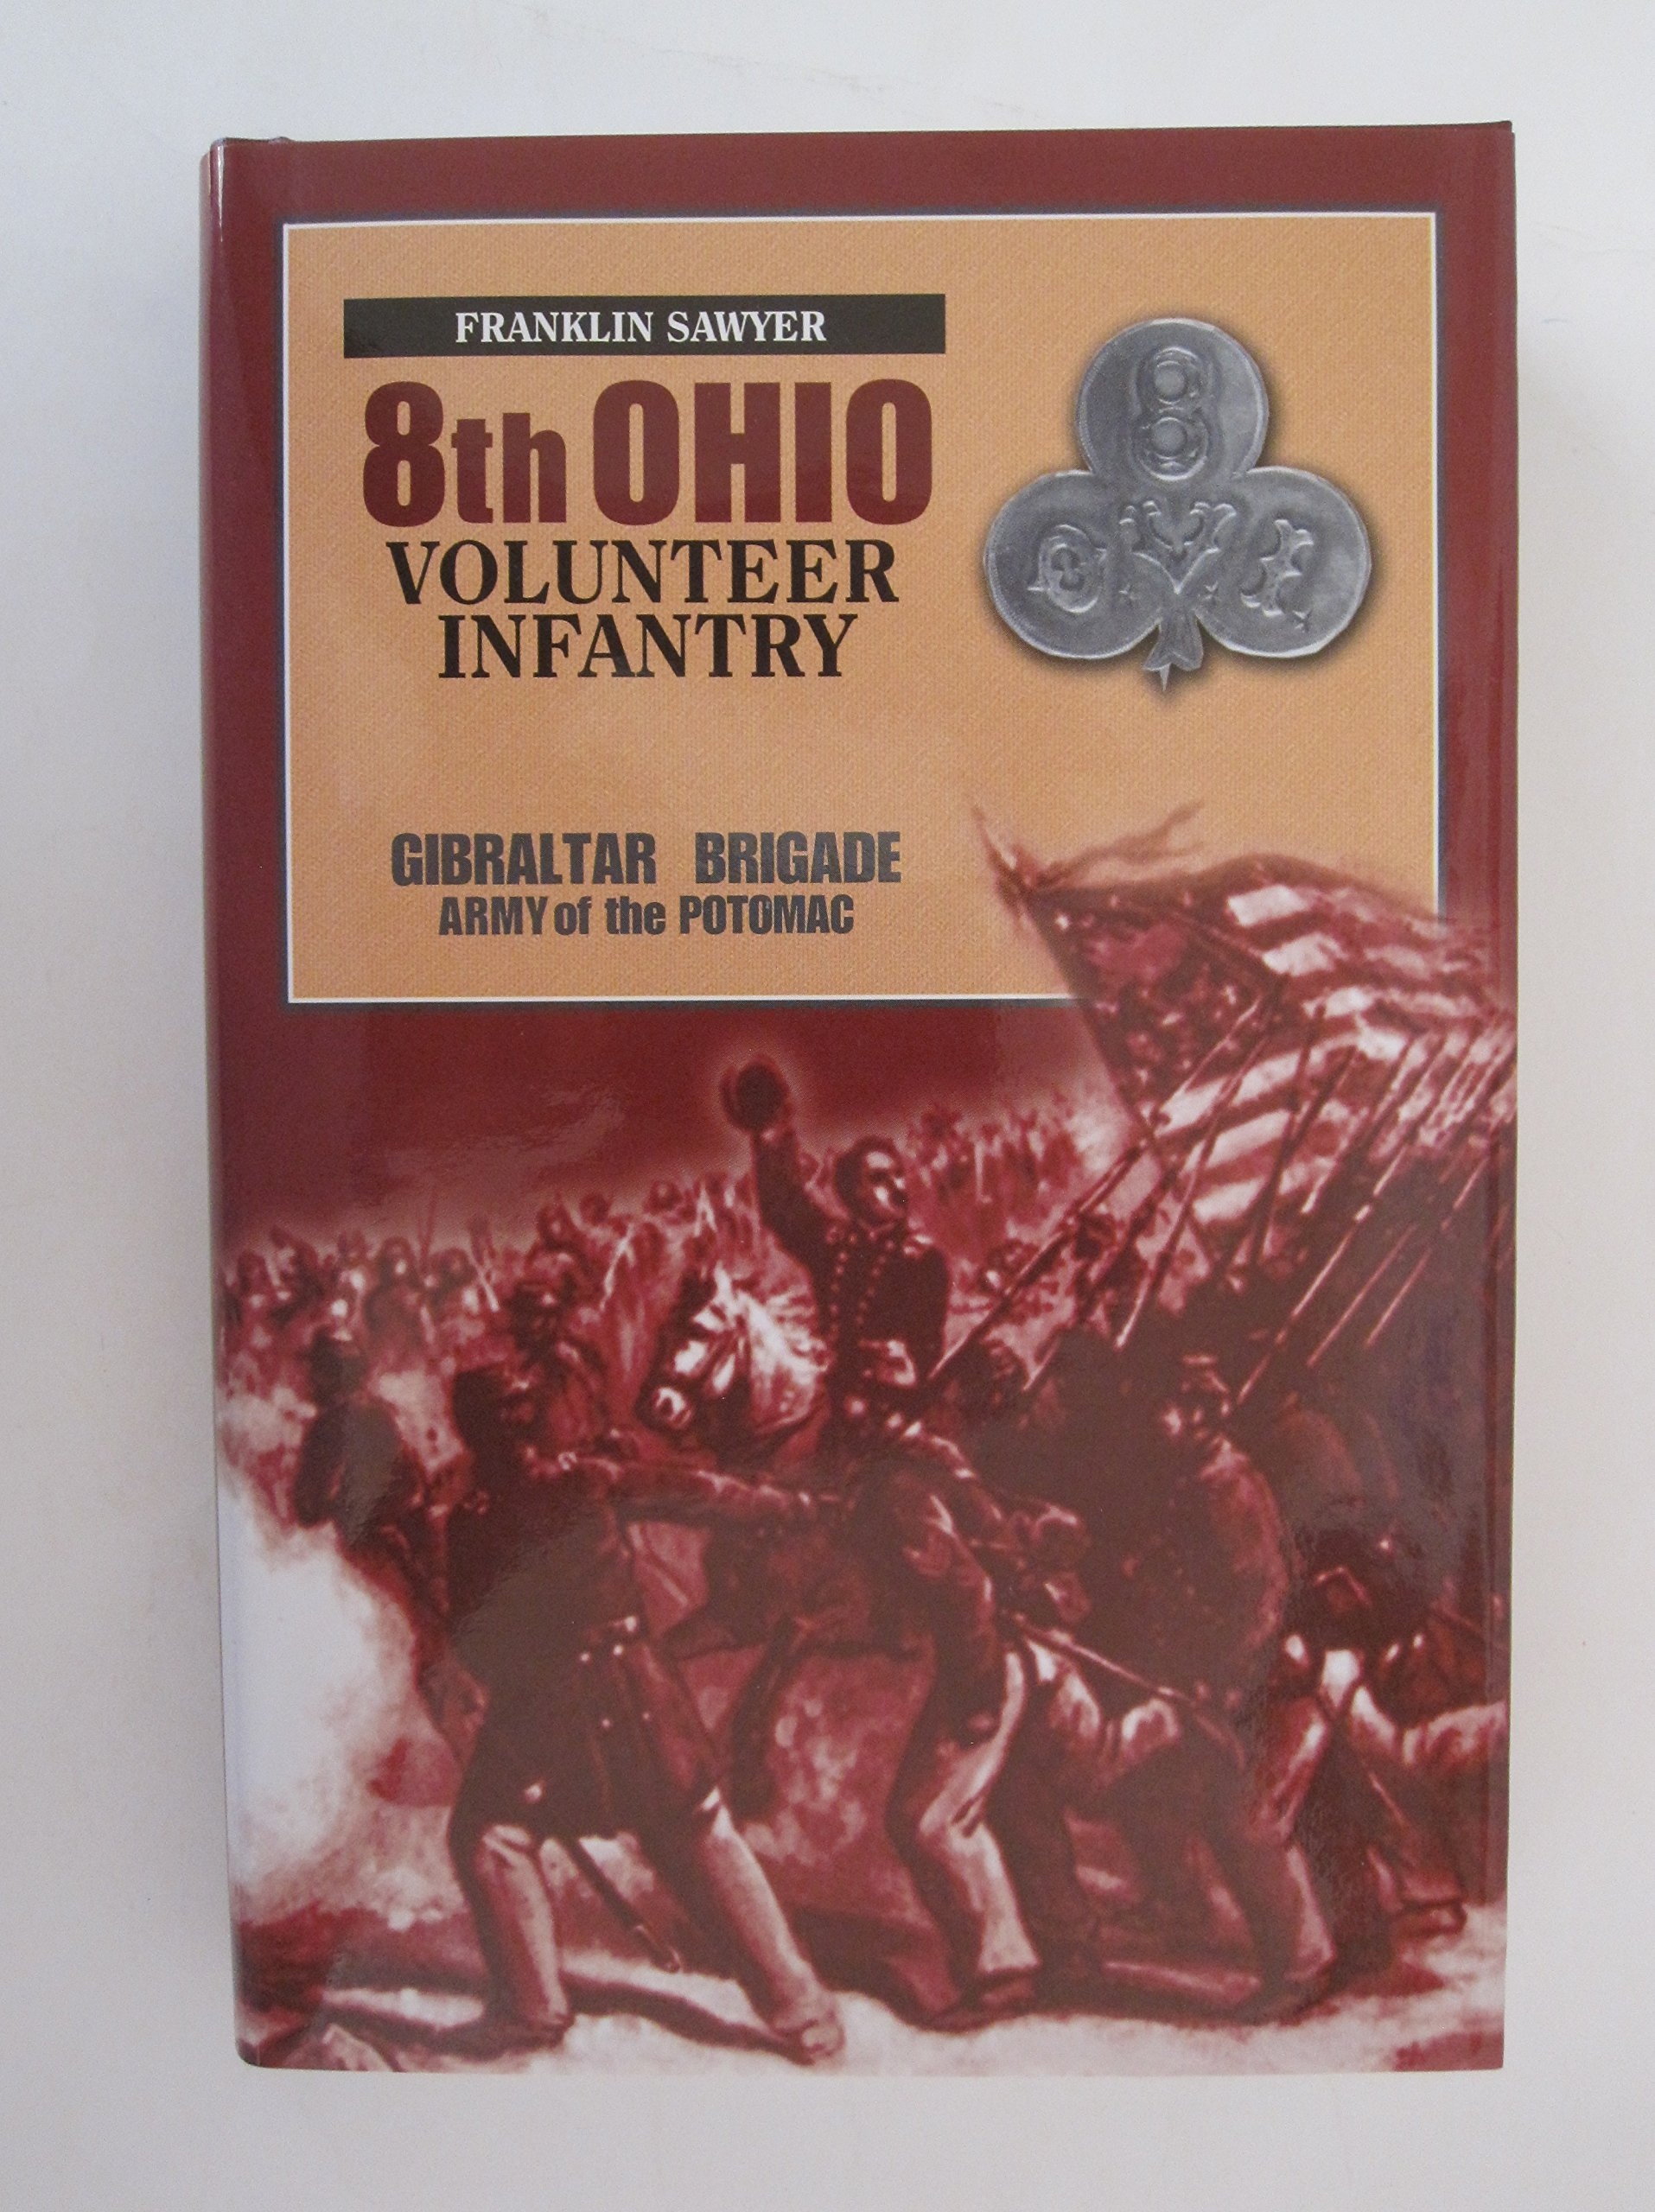 A MILITARY HISTORY OF THE 8TH REGIMENT OHIO VOLUNTEER INFANTRY, ITS BATTLES, MARCHES AND ARMY MOVEMENTS